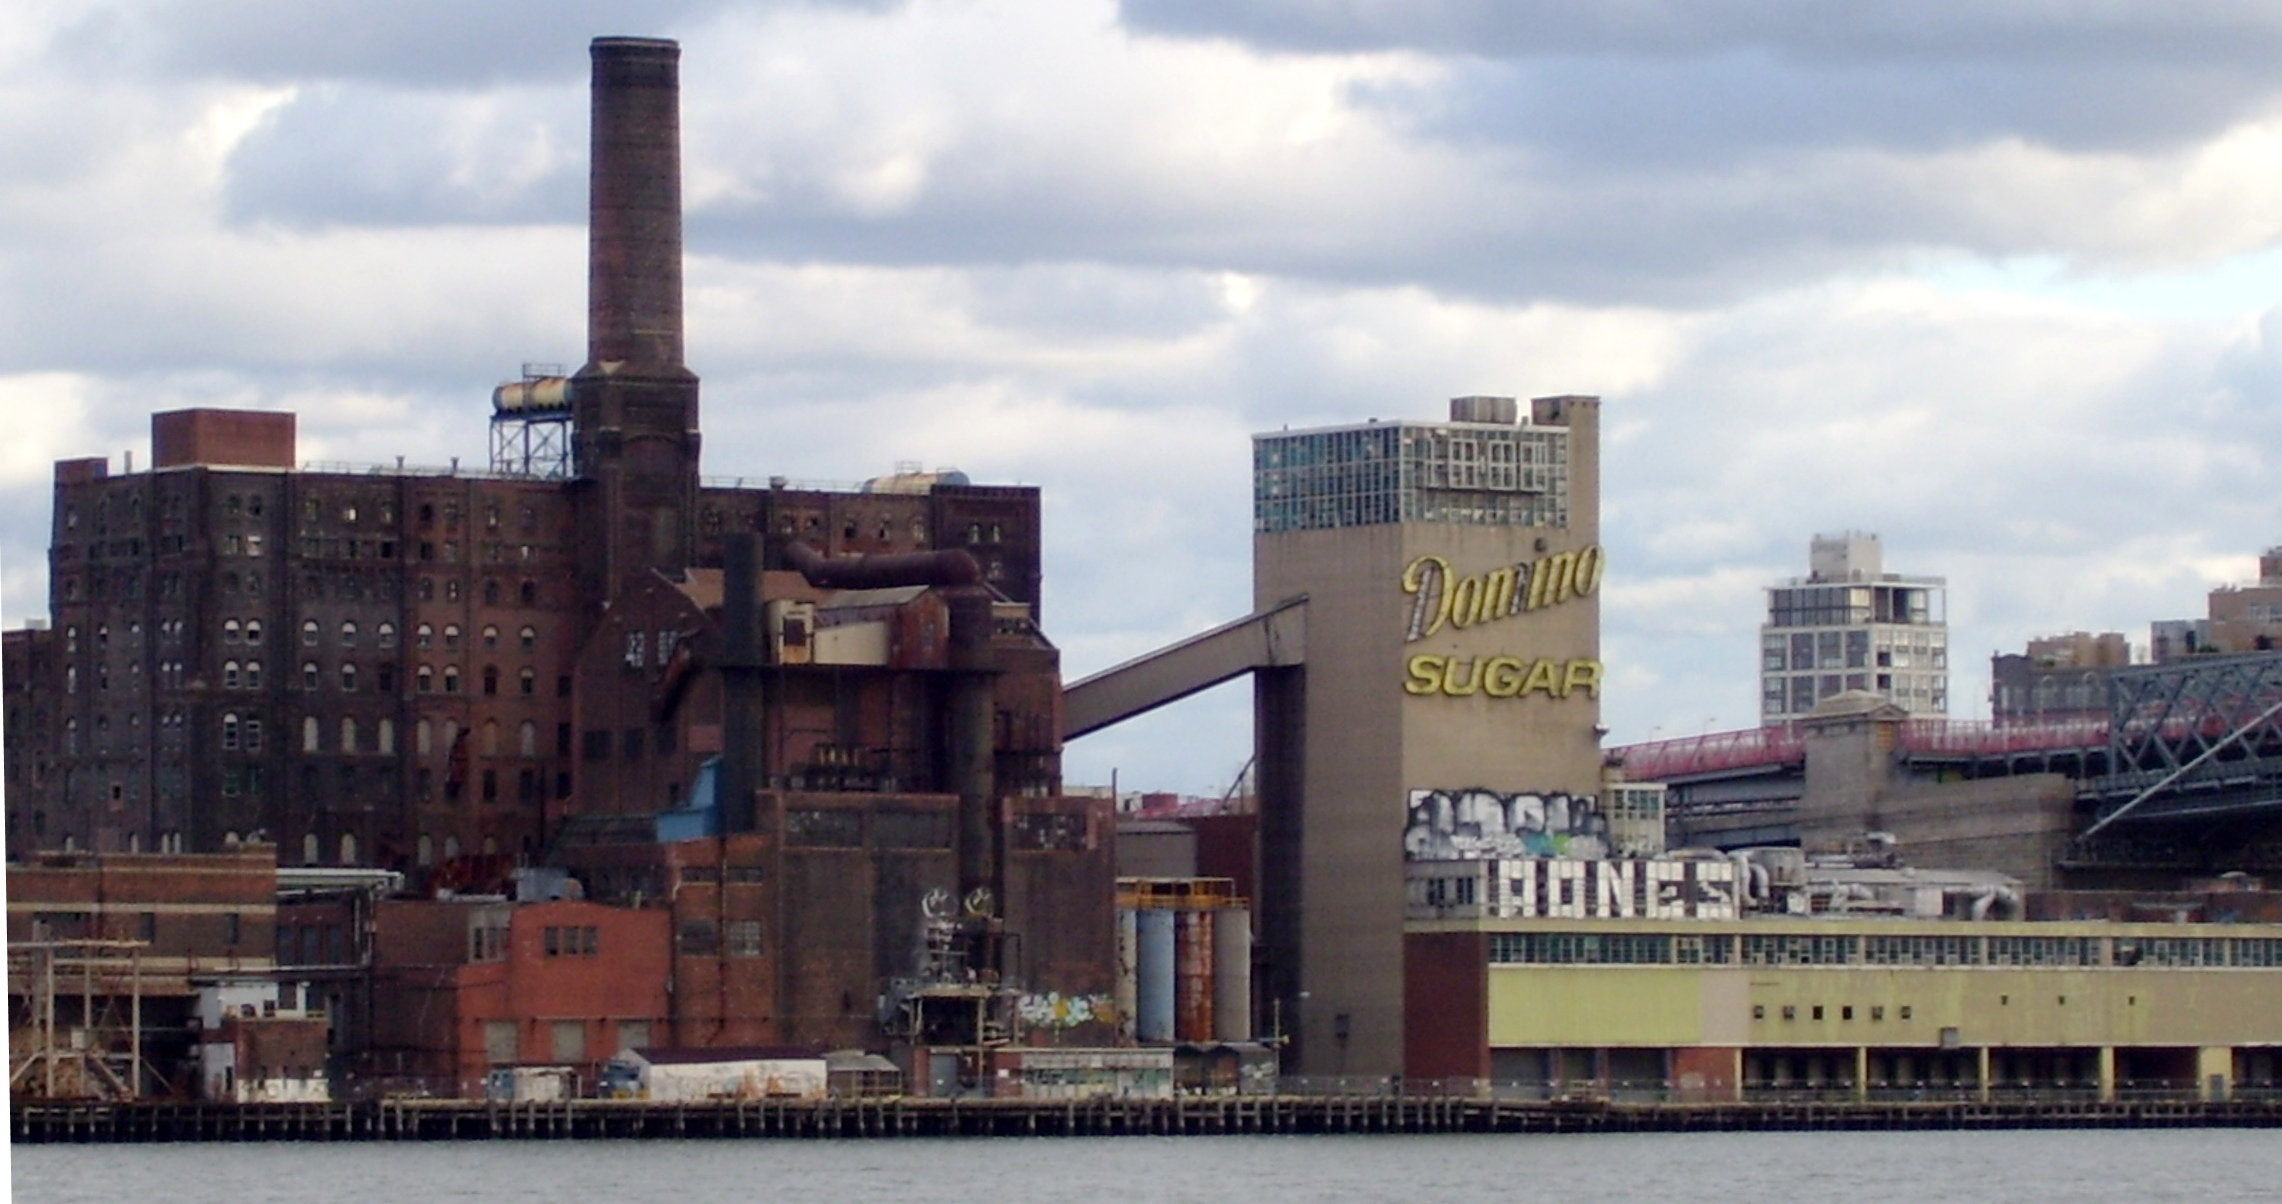 City Council Casts Final Vote On The Domino Sugar Refinery Today